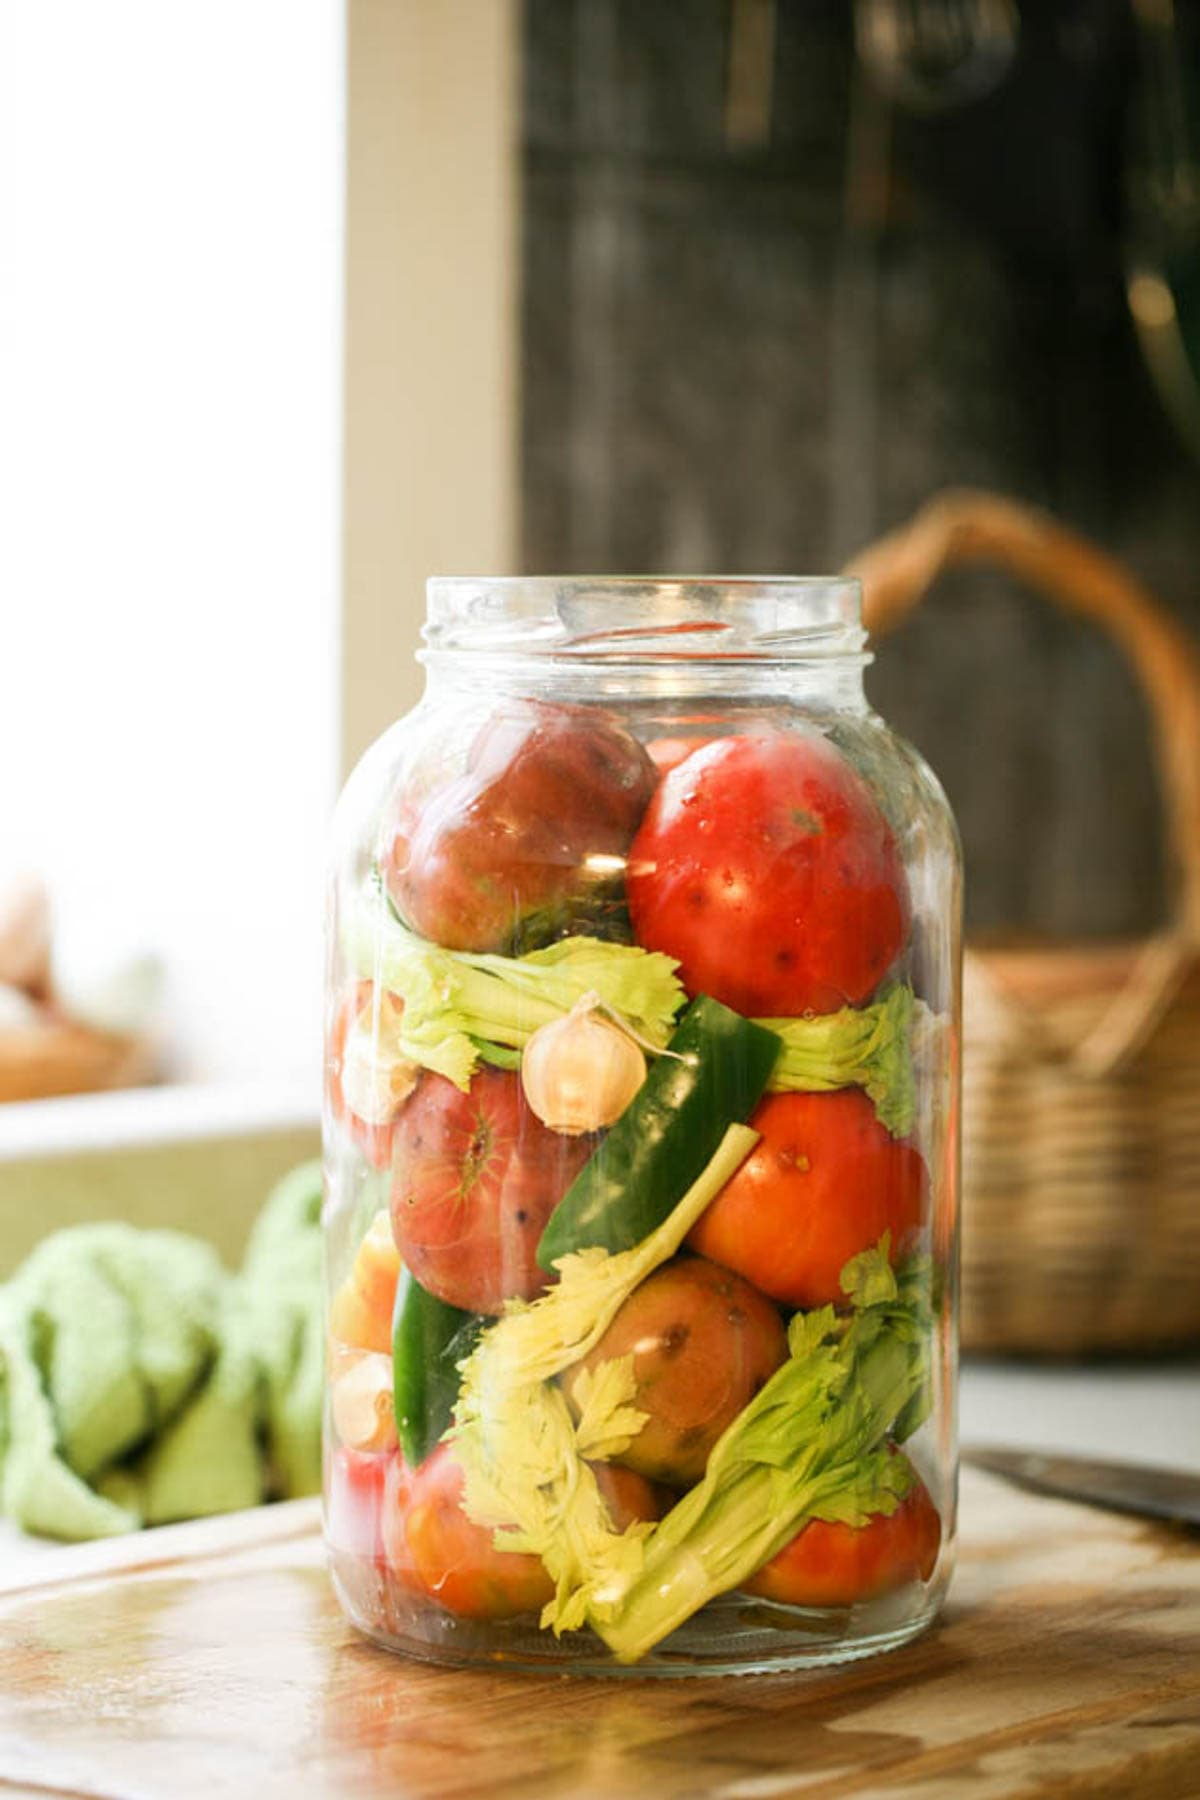 Filling the jar to the top with tomatoes.